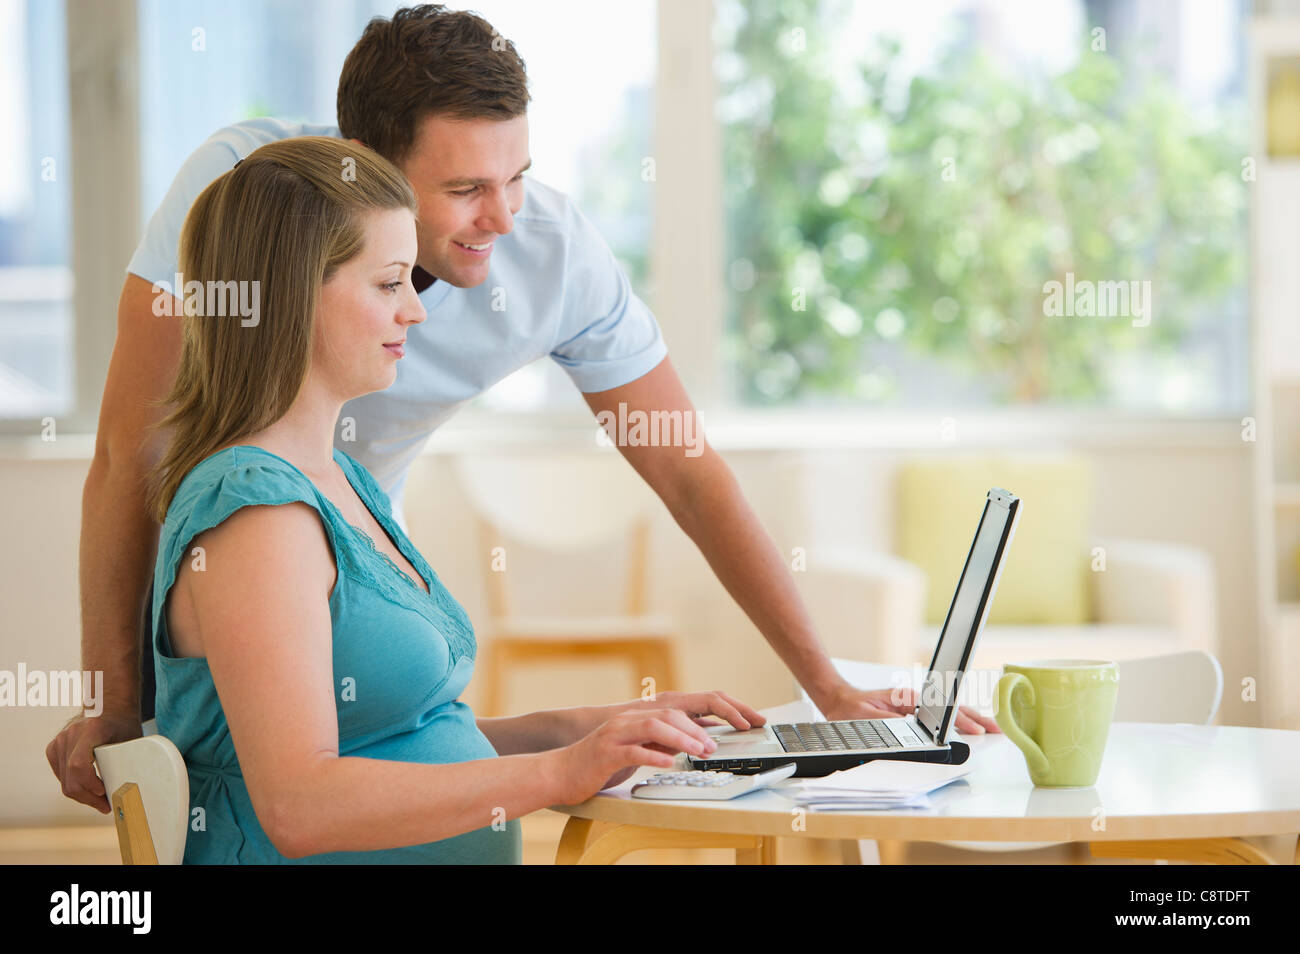 USA, New Jersey, Jersey City, Young couple using laptop - Stock Image